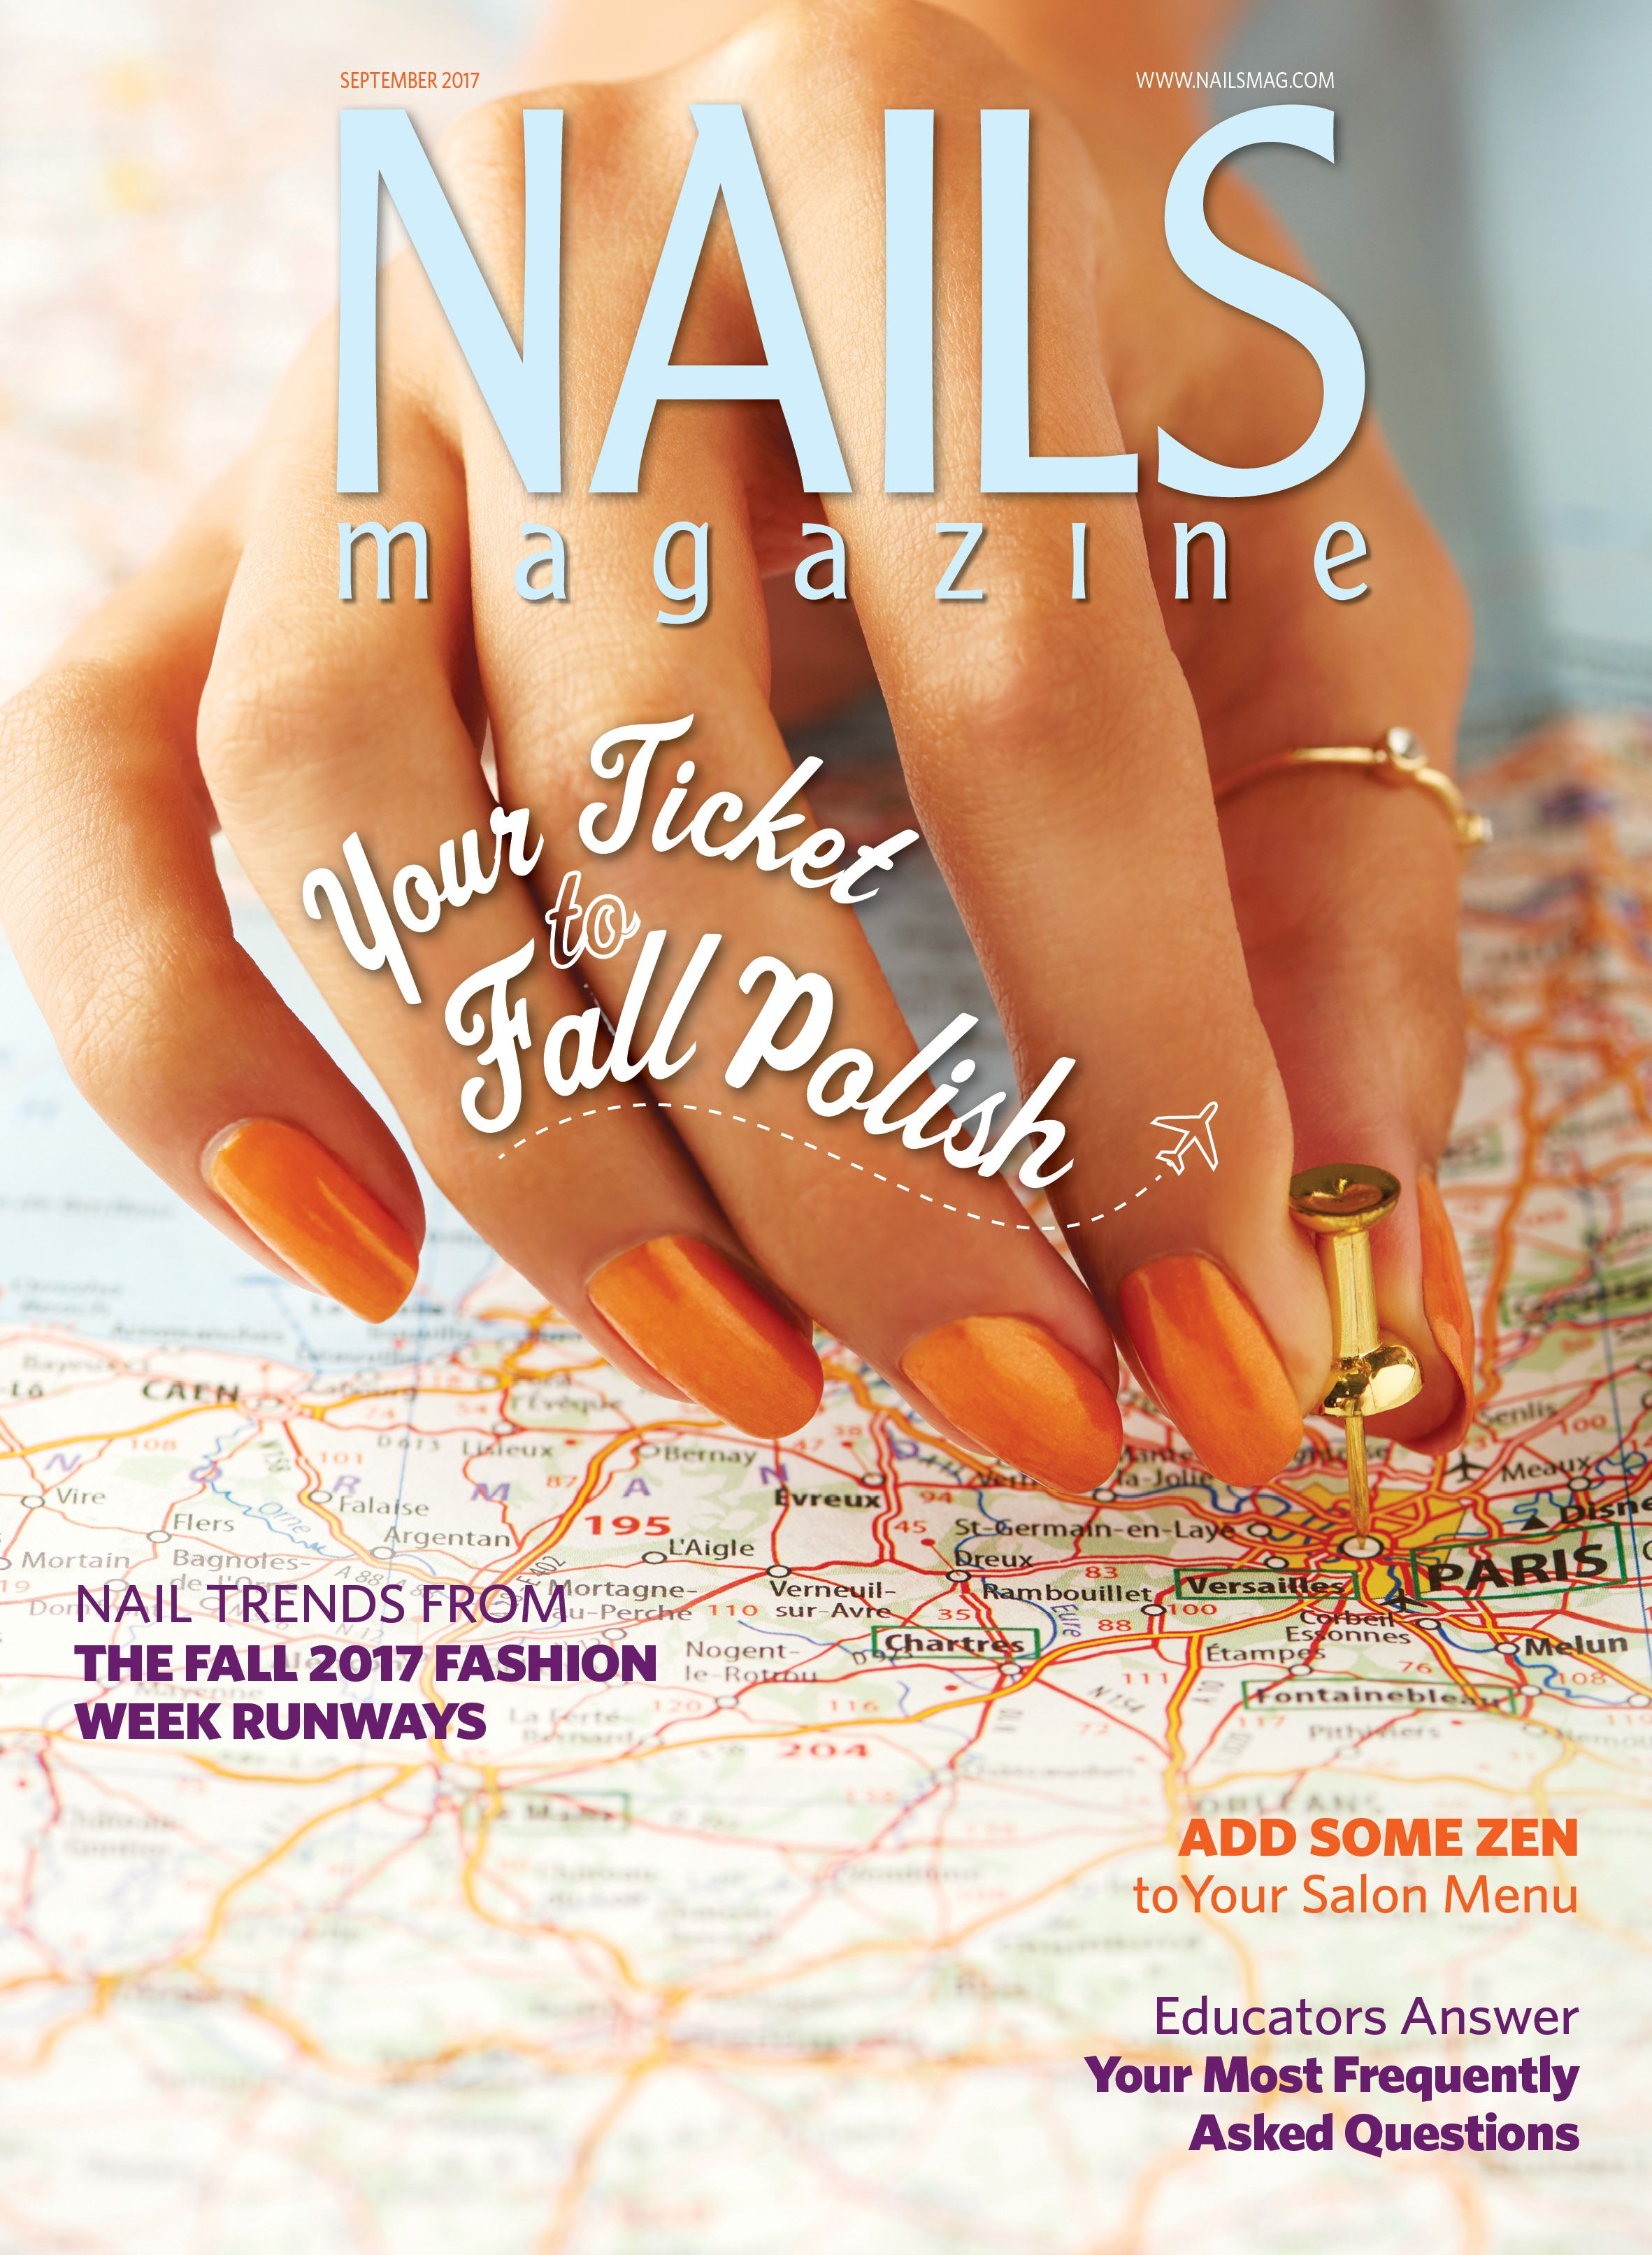 Nails Magazine September 2017 Issue Nail Tech